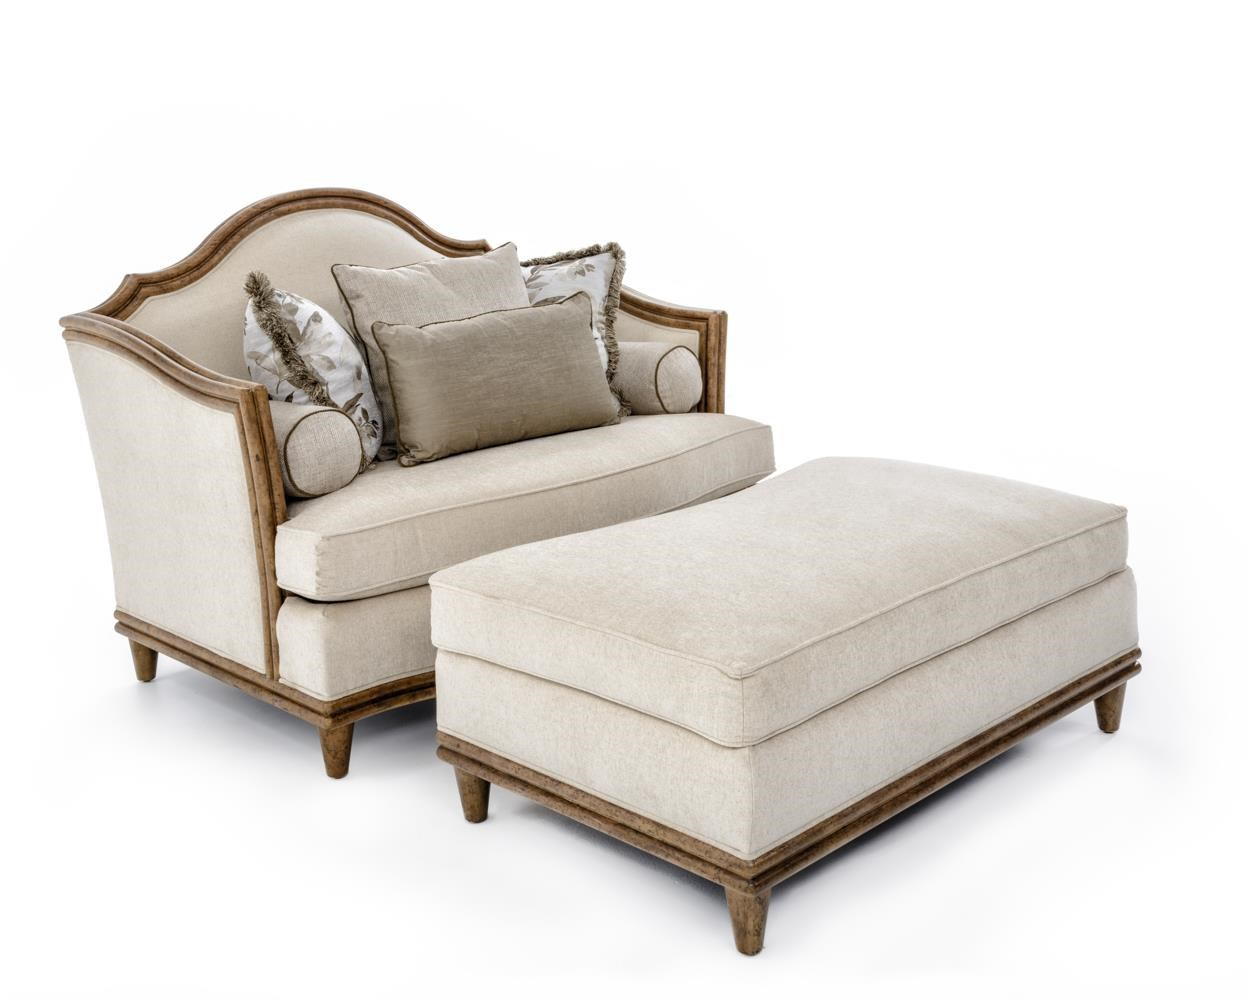 A.R.T. Furniture Inc Monterrey Chair and a Half & Ottoman - Item Number: 529523+529524-5208AA